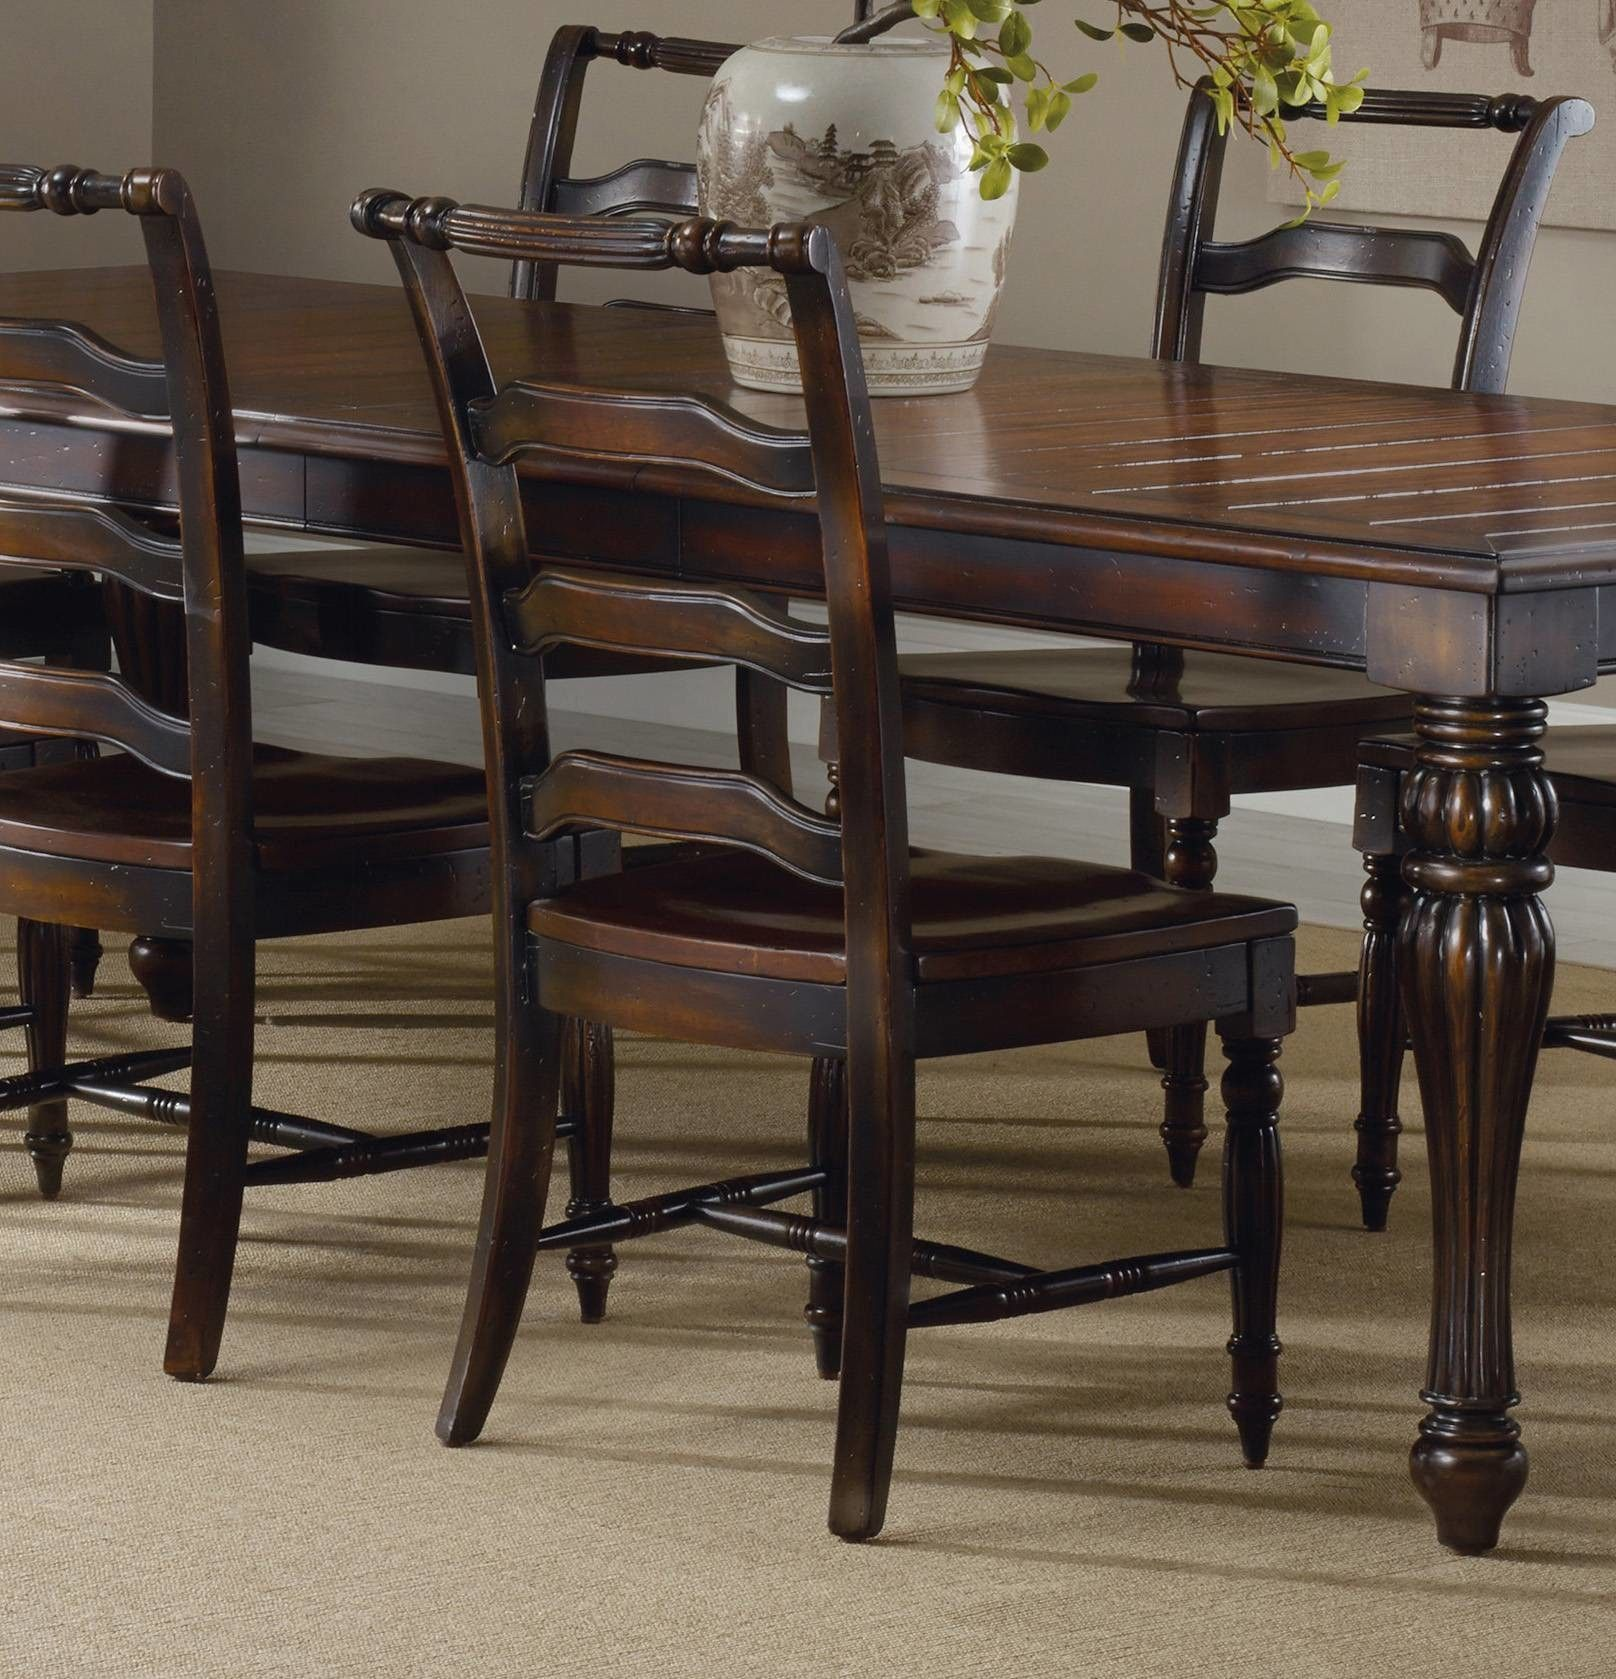 Shop For Hooker Furniture Eastridge Ladderback Side Chair And Other Dining Room Chairs At Burke Inc In Lexington KY